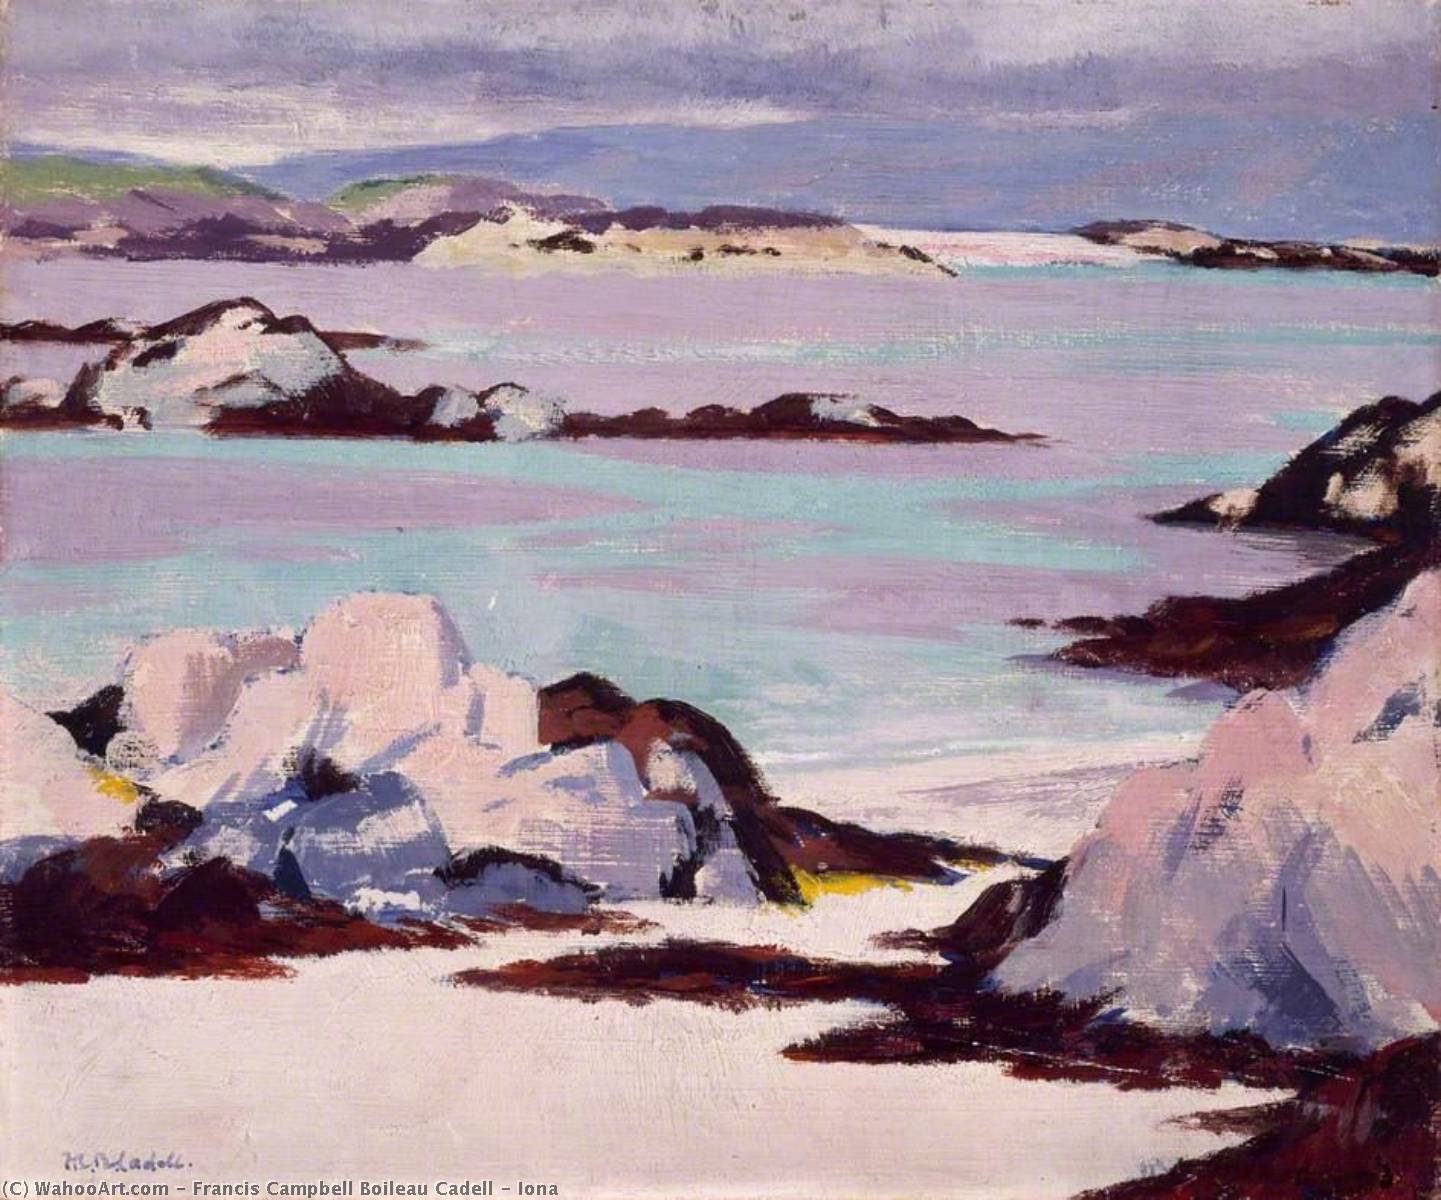 Iona, 1925 by Francis Campbell Boileau Cadell (1883-1937) | Oil Painting | WahooArt.com